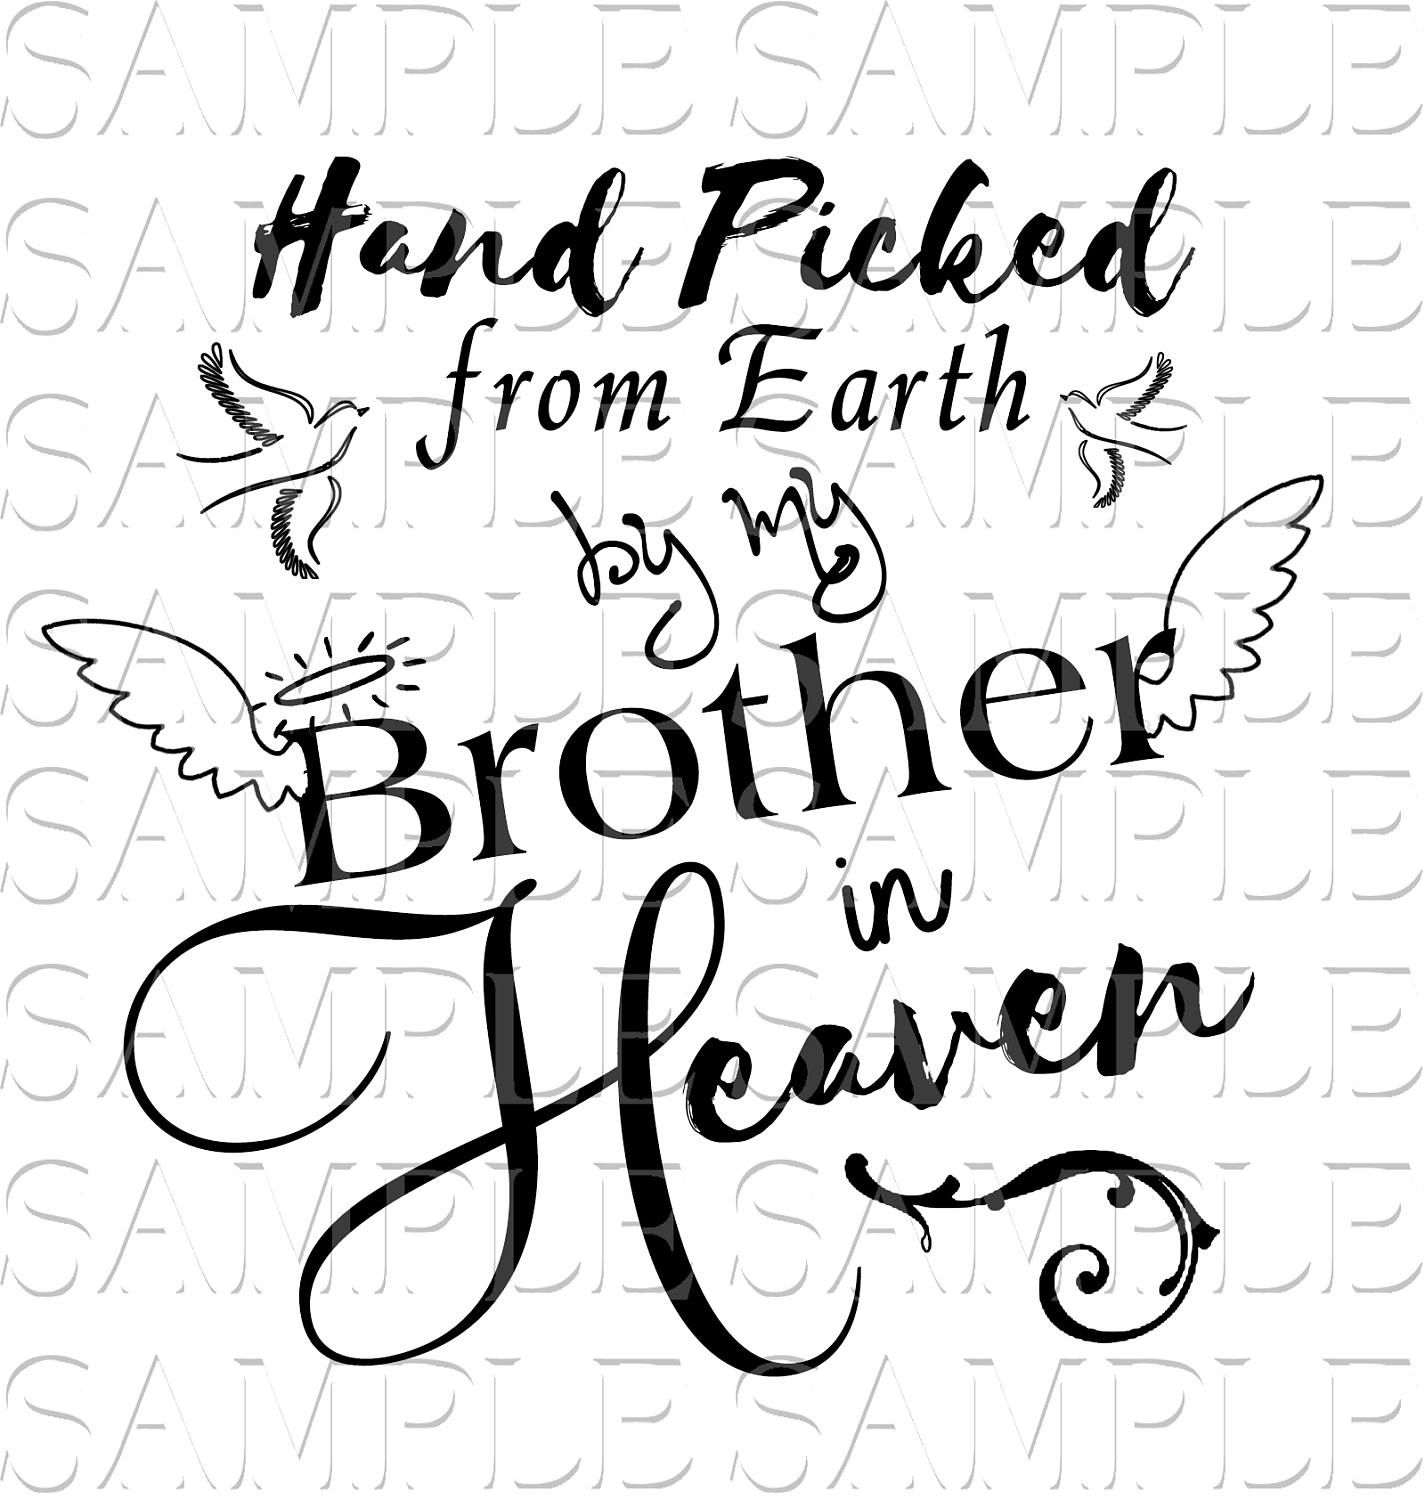 In loving memory brother sister angel loss svg sticker decal car decal wings infant loss keepsake motorcycle truck car by pickleddesigns on etsy